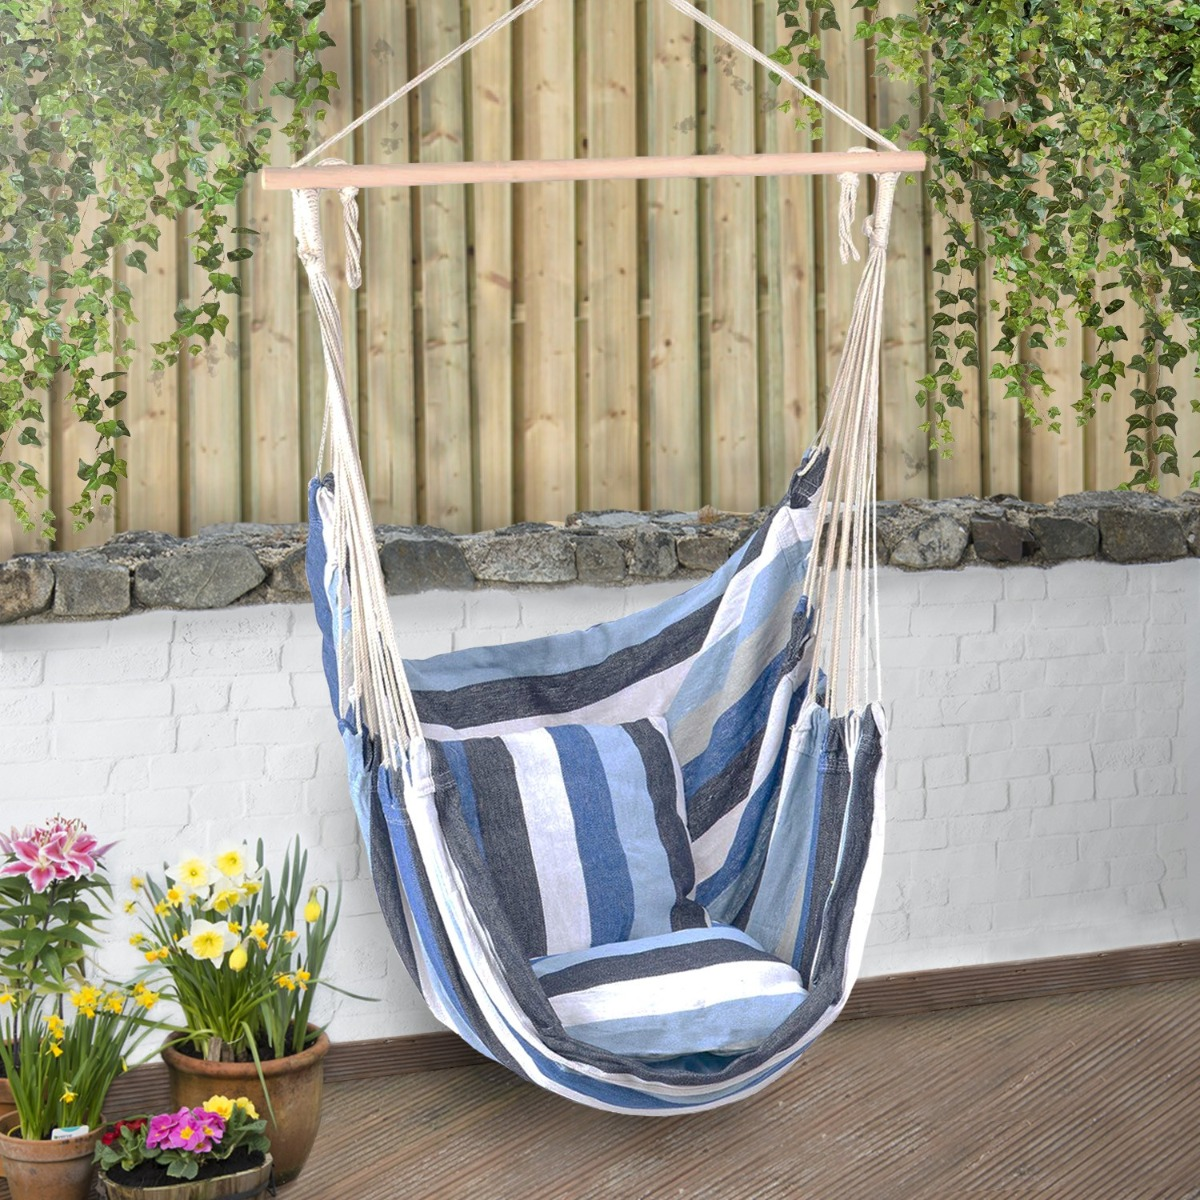 Large Garden Hammock Chair Hanging Swing Seat With Cushions Outdoor Christow Ebay